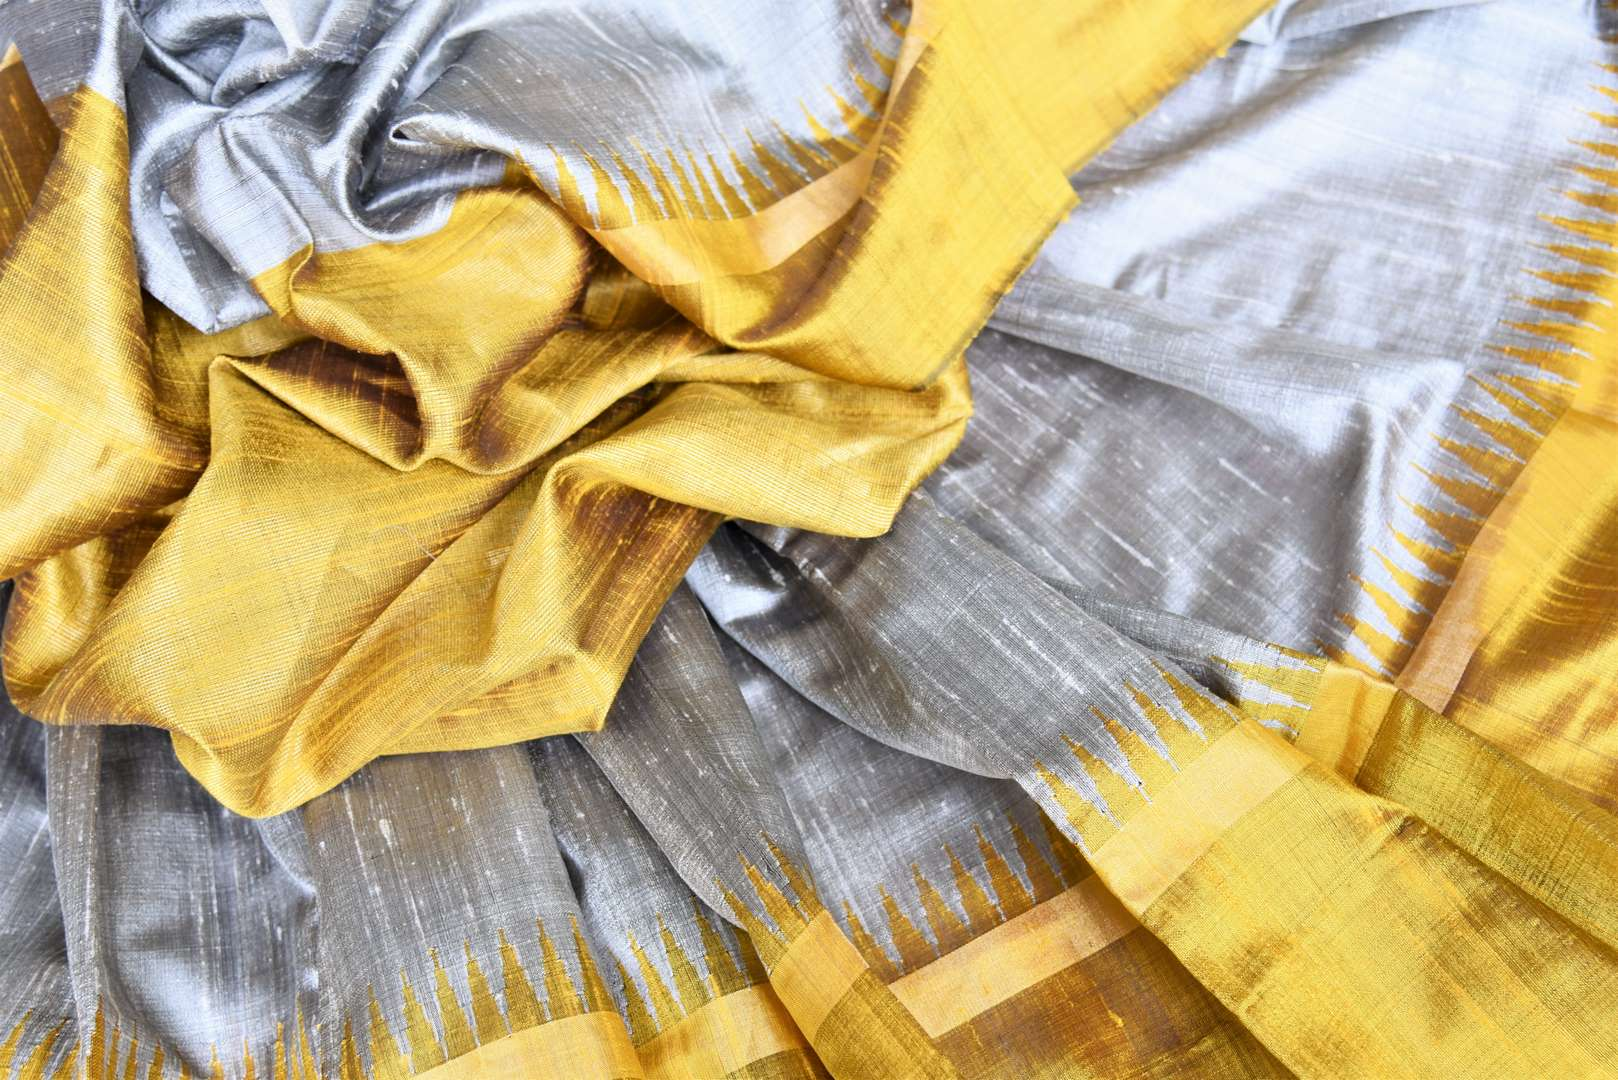 Buy grey tussar dupion silk sari online in USA with mustard yellow border. Add grace to your ethnic look with Indian designer silk sarees available at Pure Elegance Indian clothing store for women in USA or shop online.-details